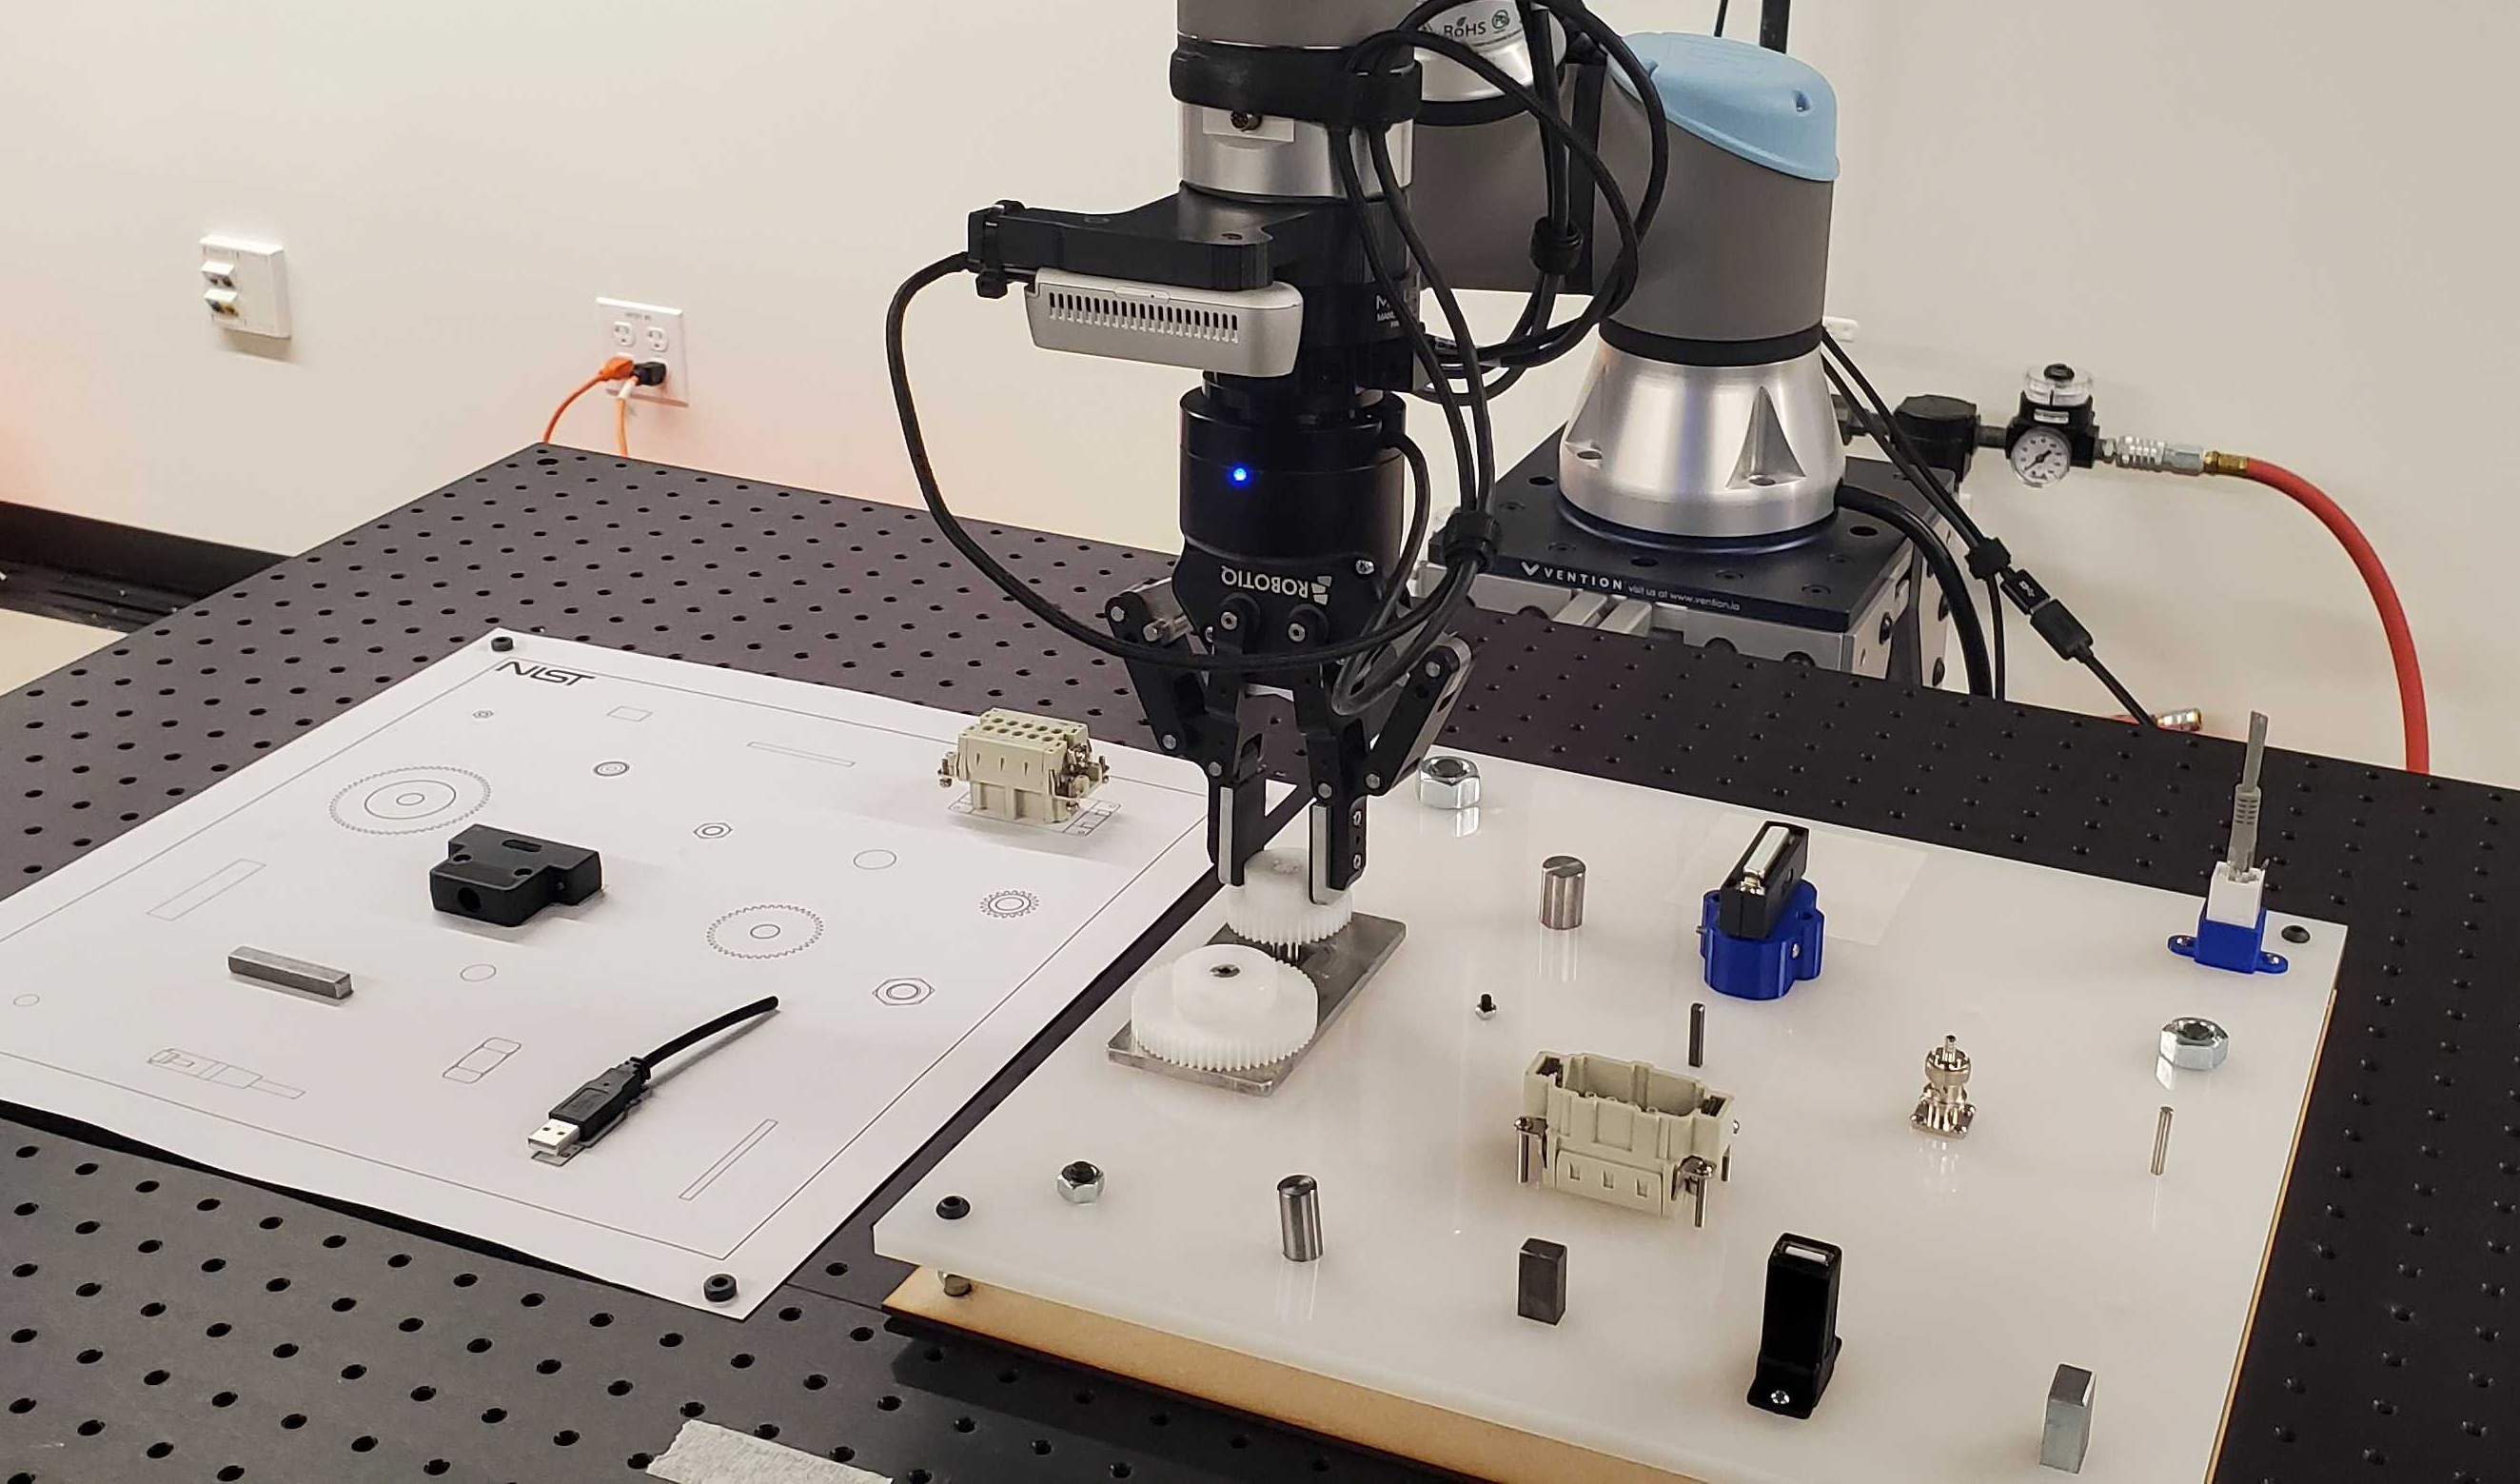 Robot manipulating a gear on the NIST-ATB #1